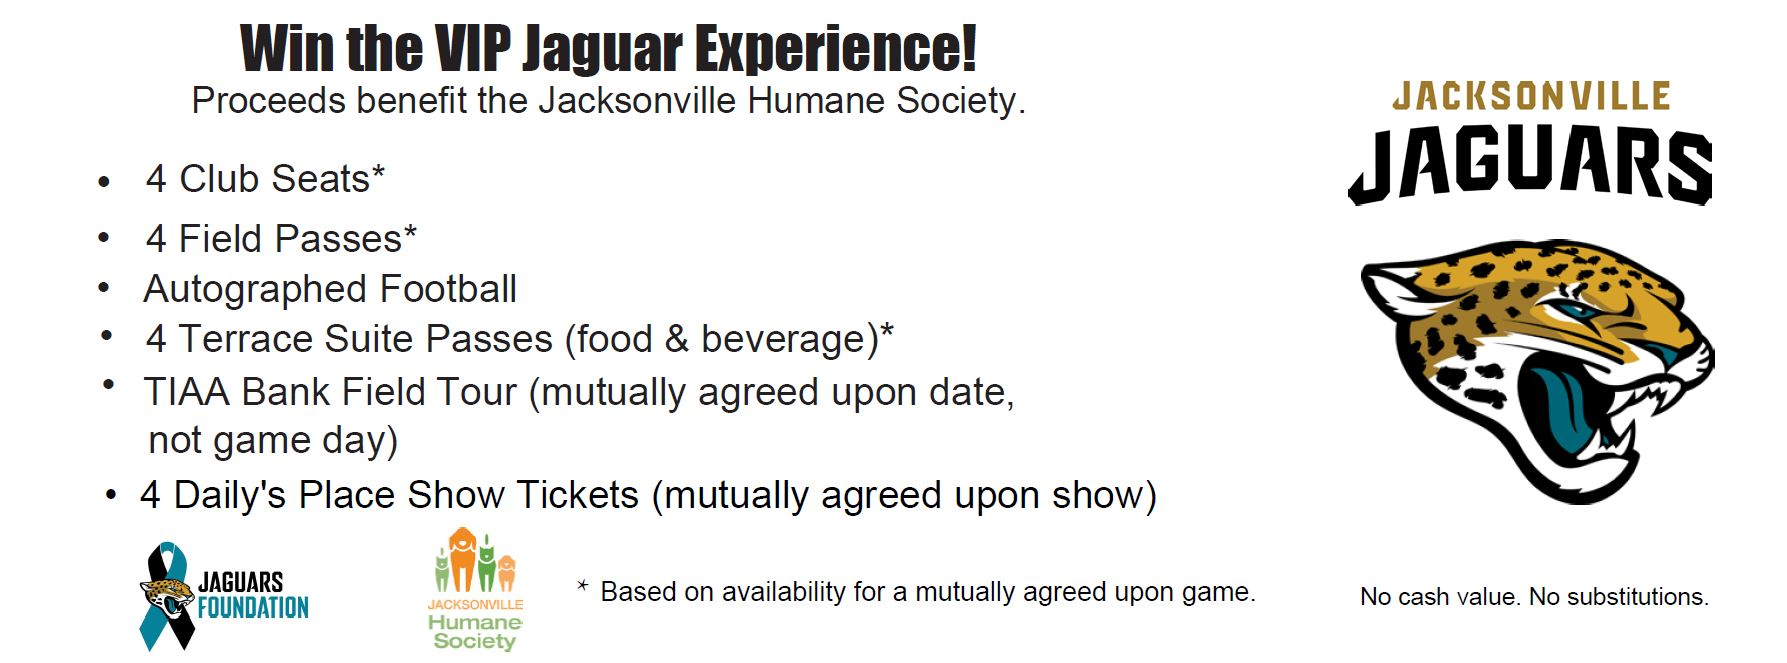 JACKSONVILLE HUMANE SOCIETY - 21st Annual Toast to the Animals